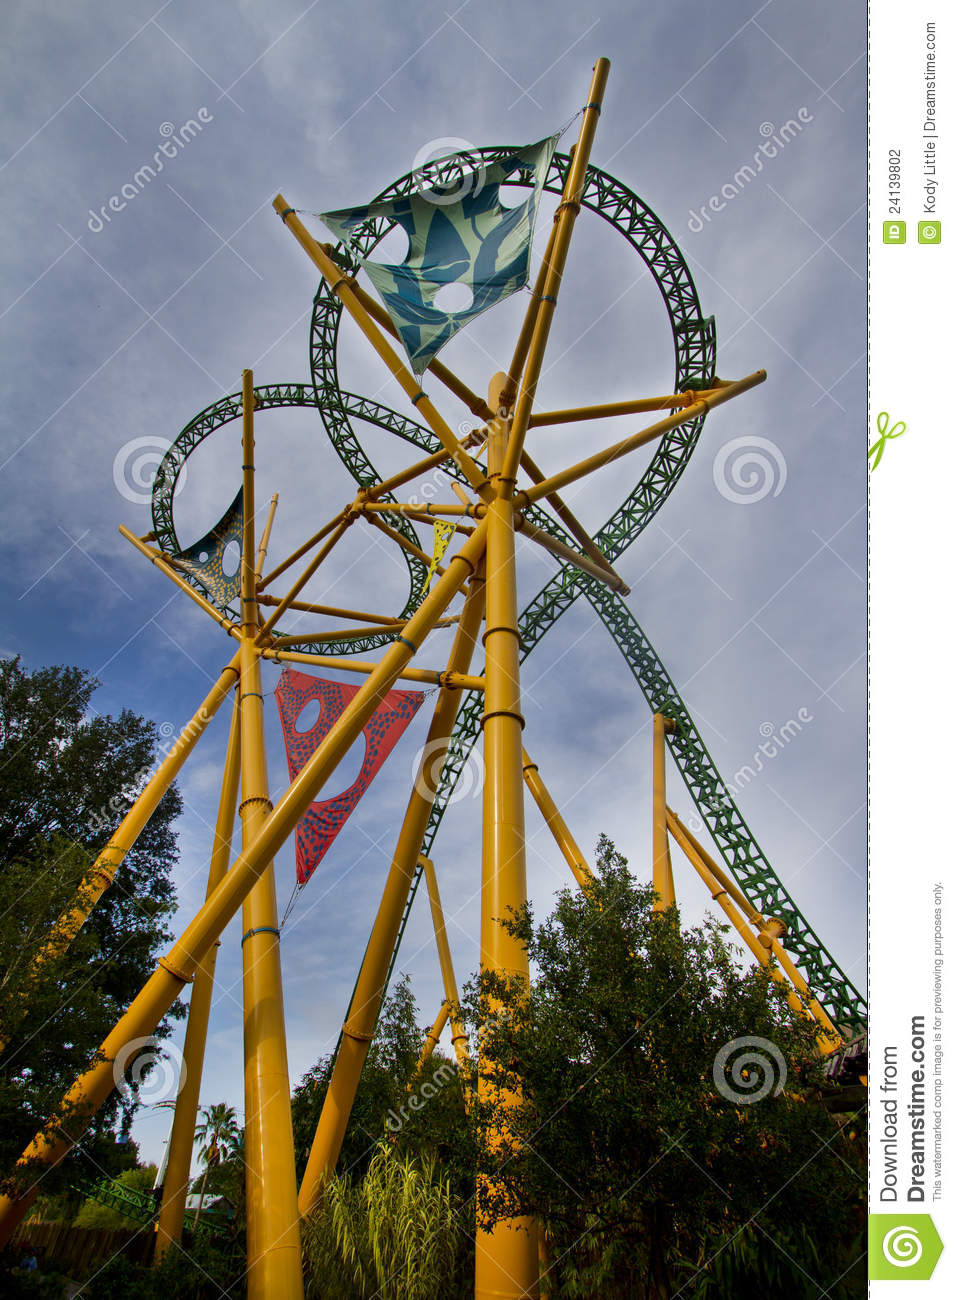 Image Result For Busch Gardens Big Roller Coaster